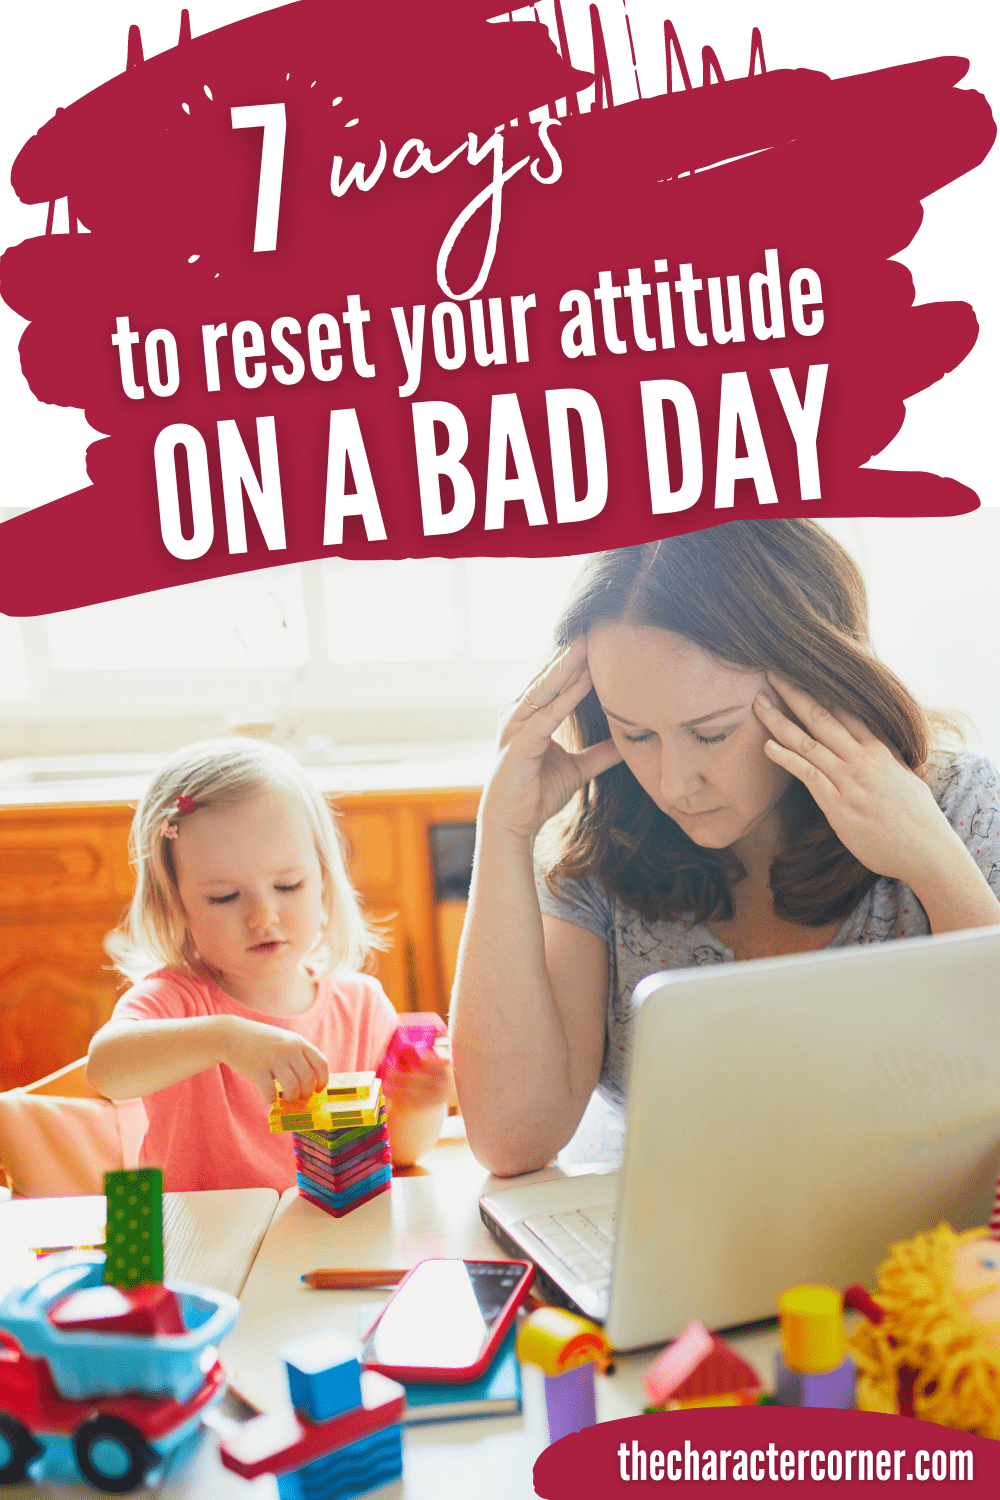 stressed out mom with toddler and computer text on image reads Ways to Reset Your Attitude On a Bad Day